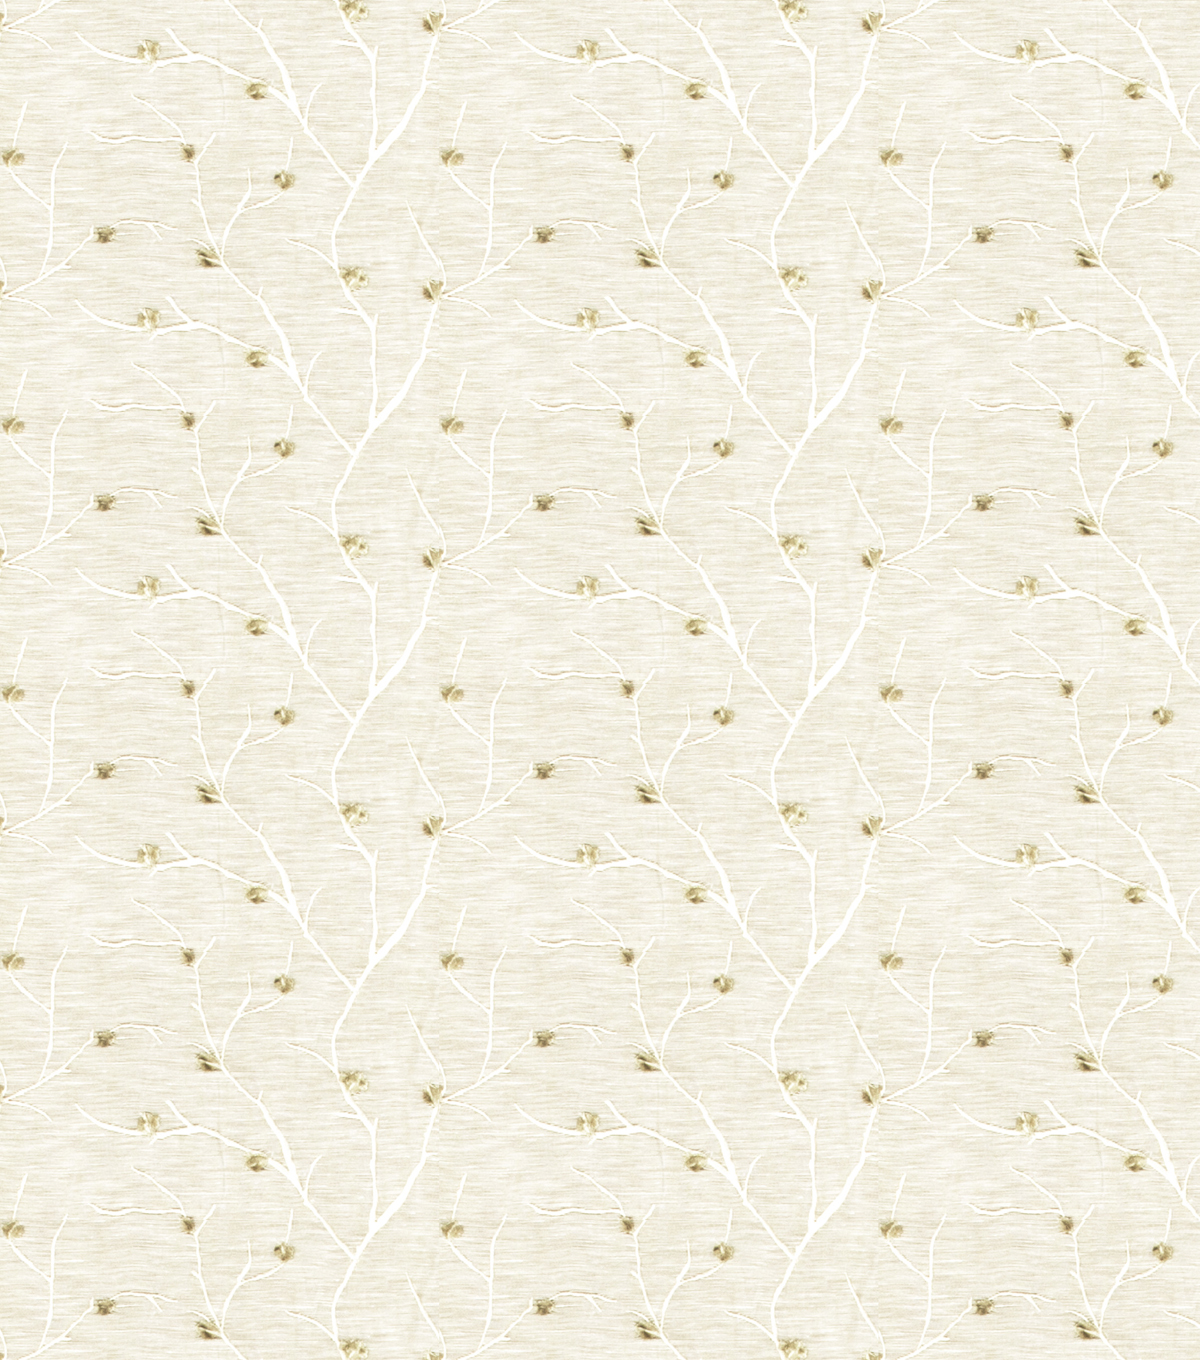 Home Decor 8x8 Fabric Swatch-Eaton Square Remedy Ivory